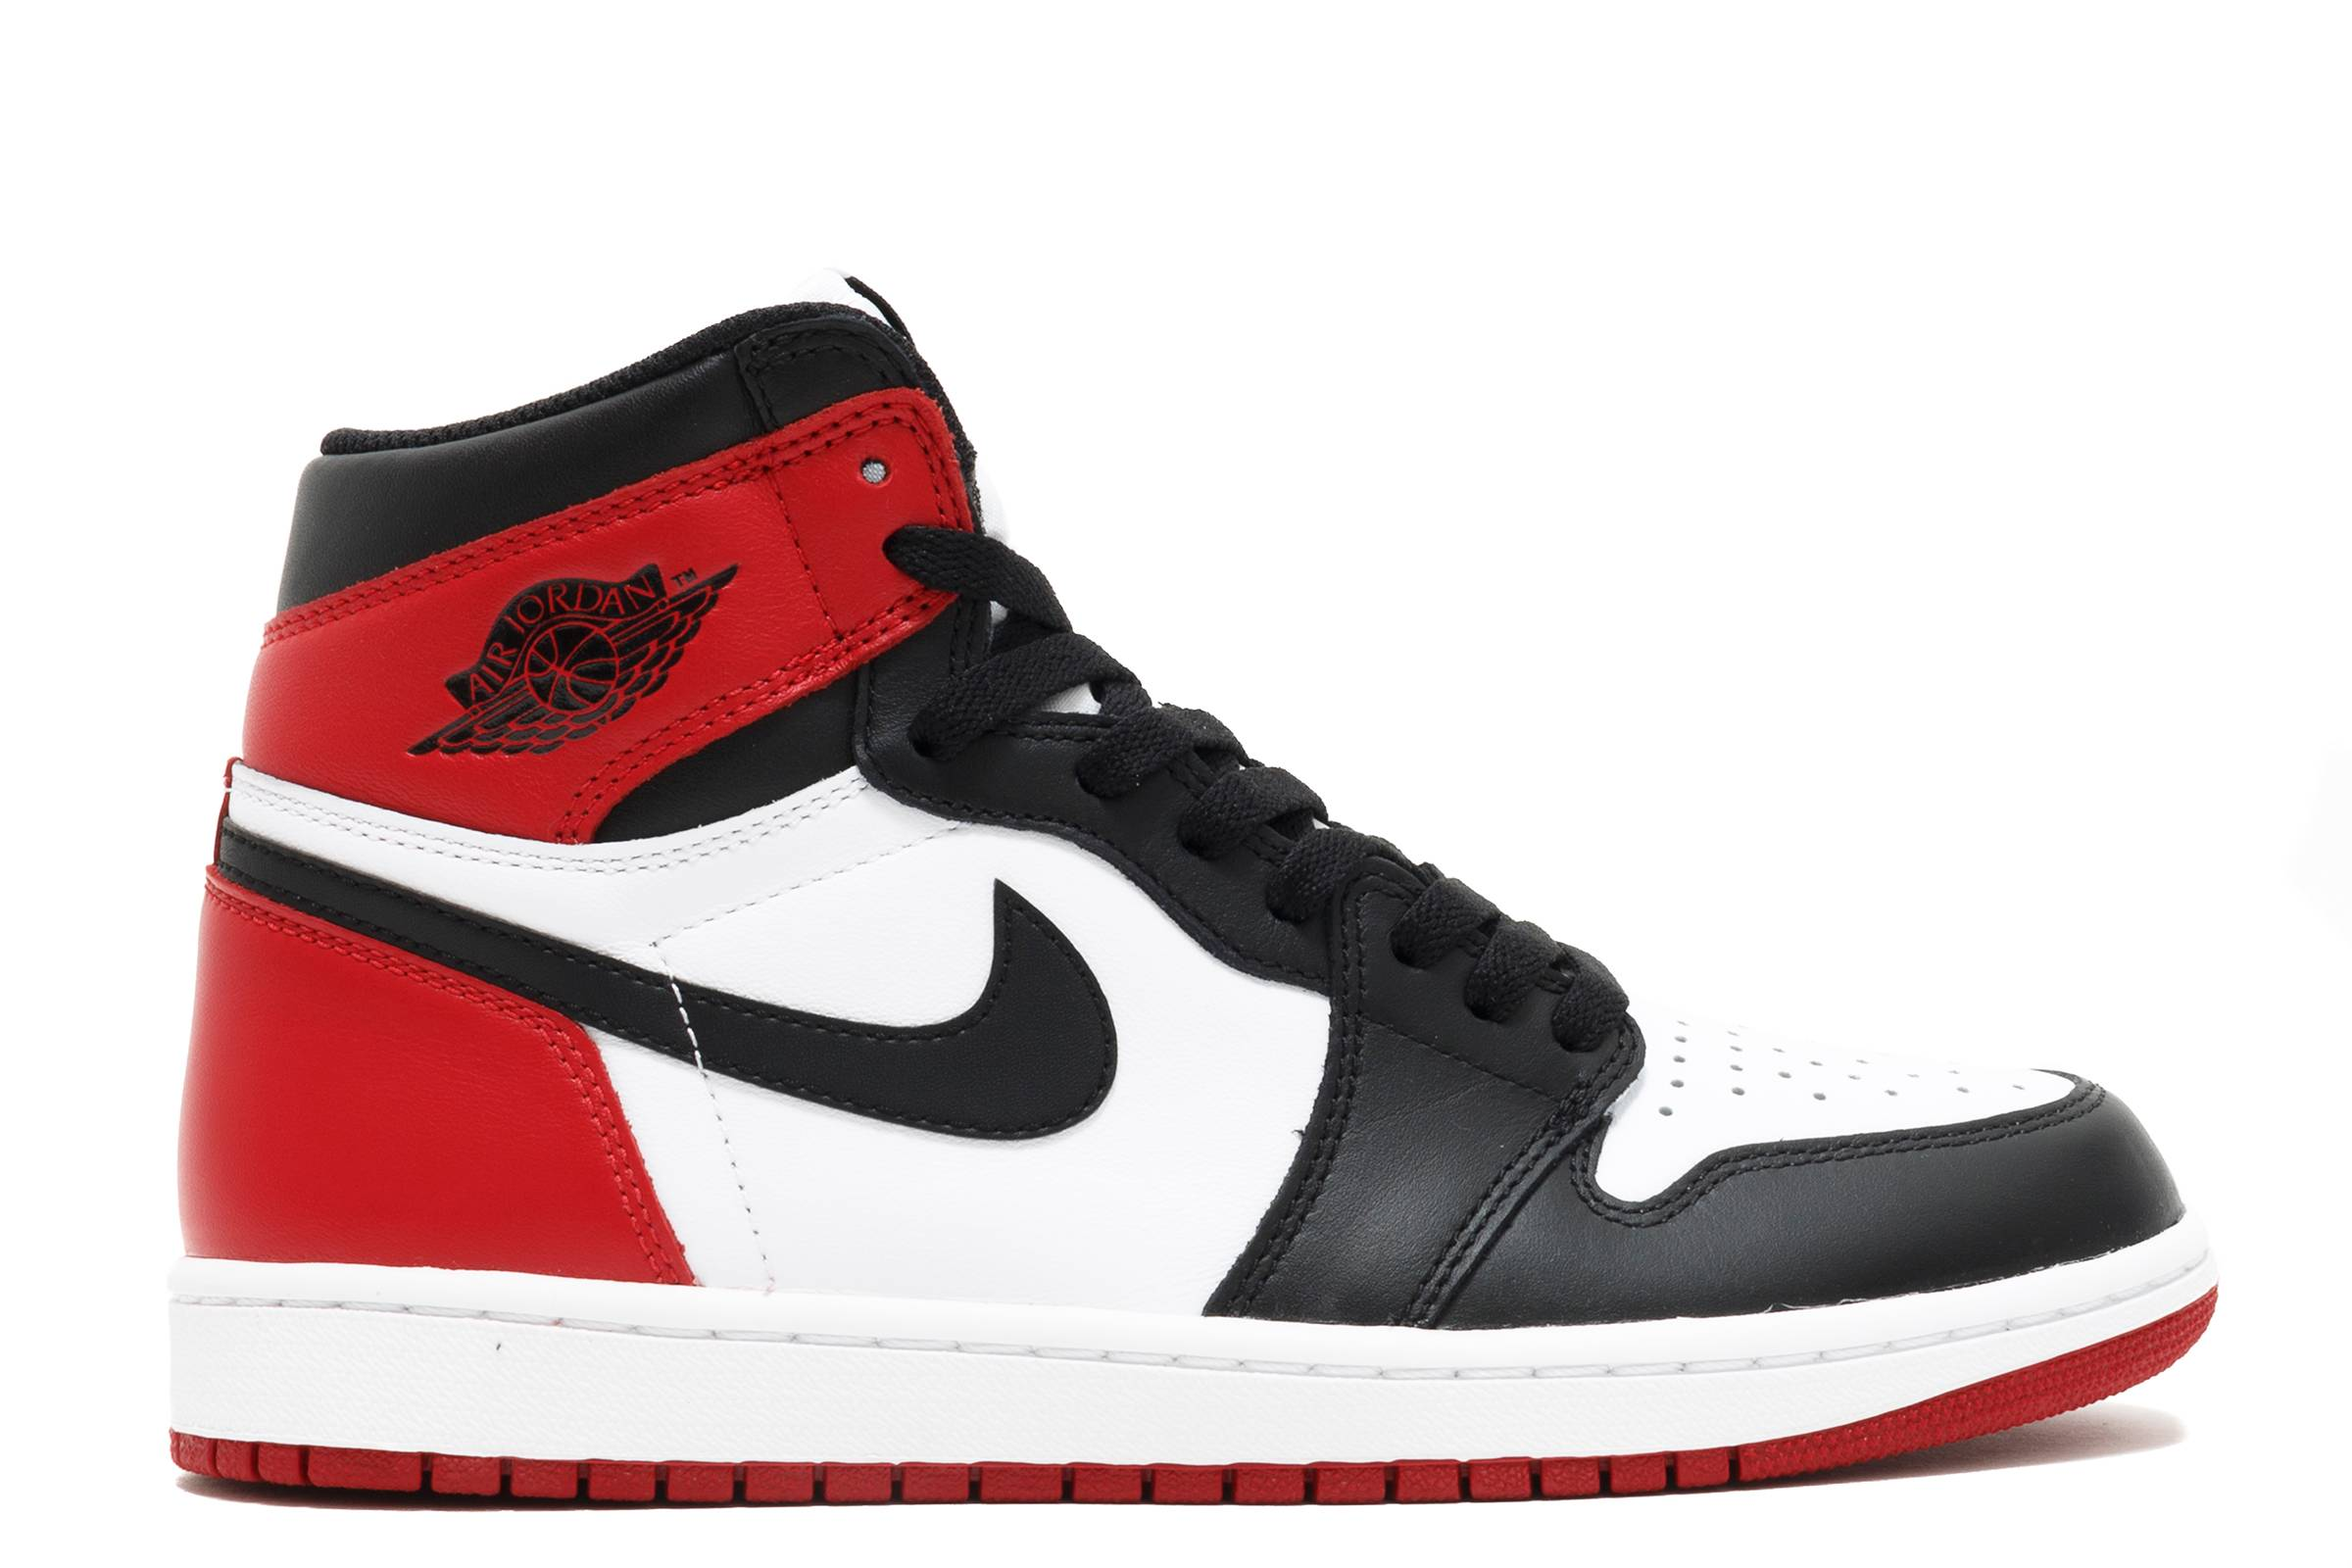 new style 49a7f 0f110 The One That Started It All: A History of the Jordan 1 | Grailed